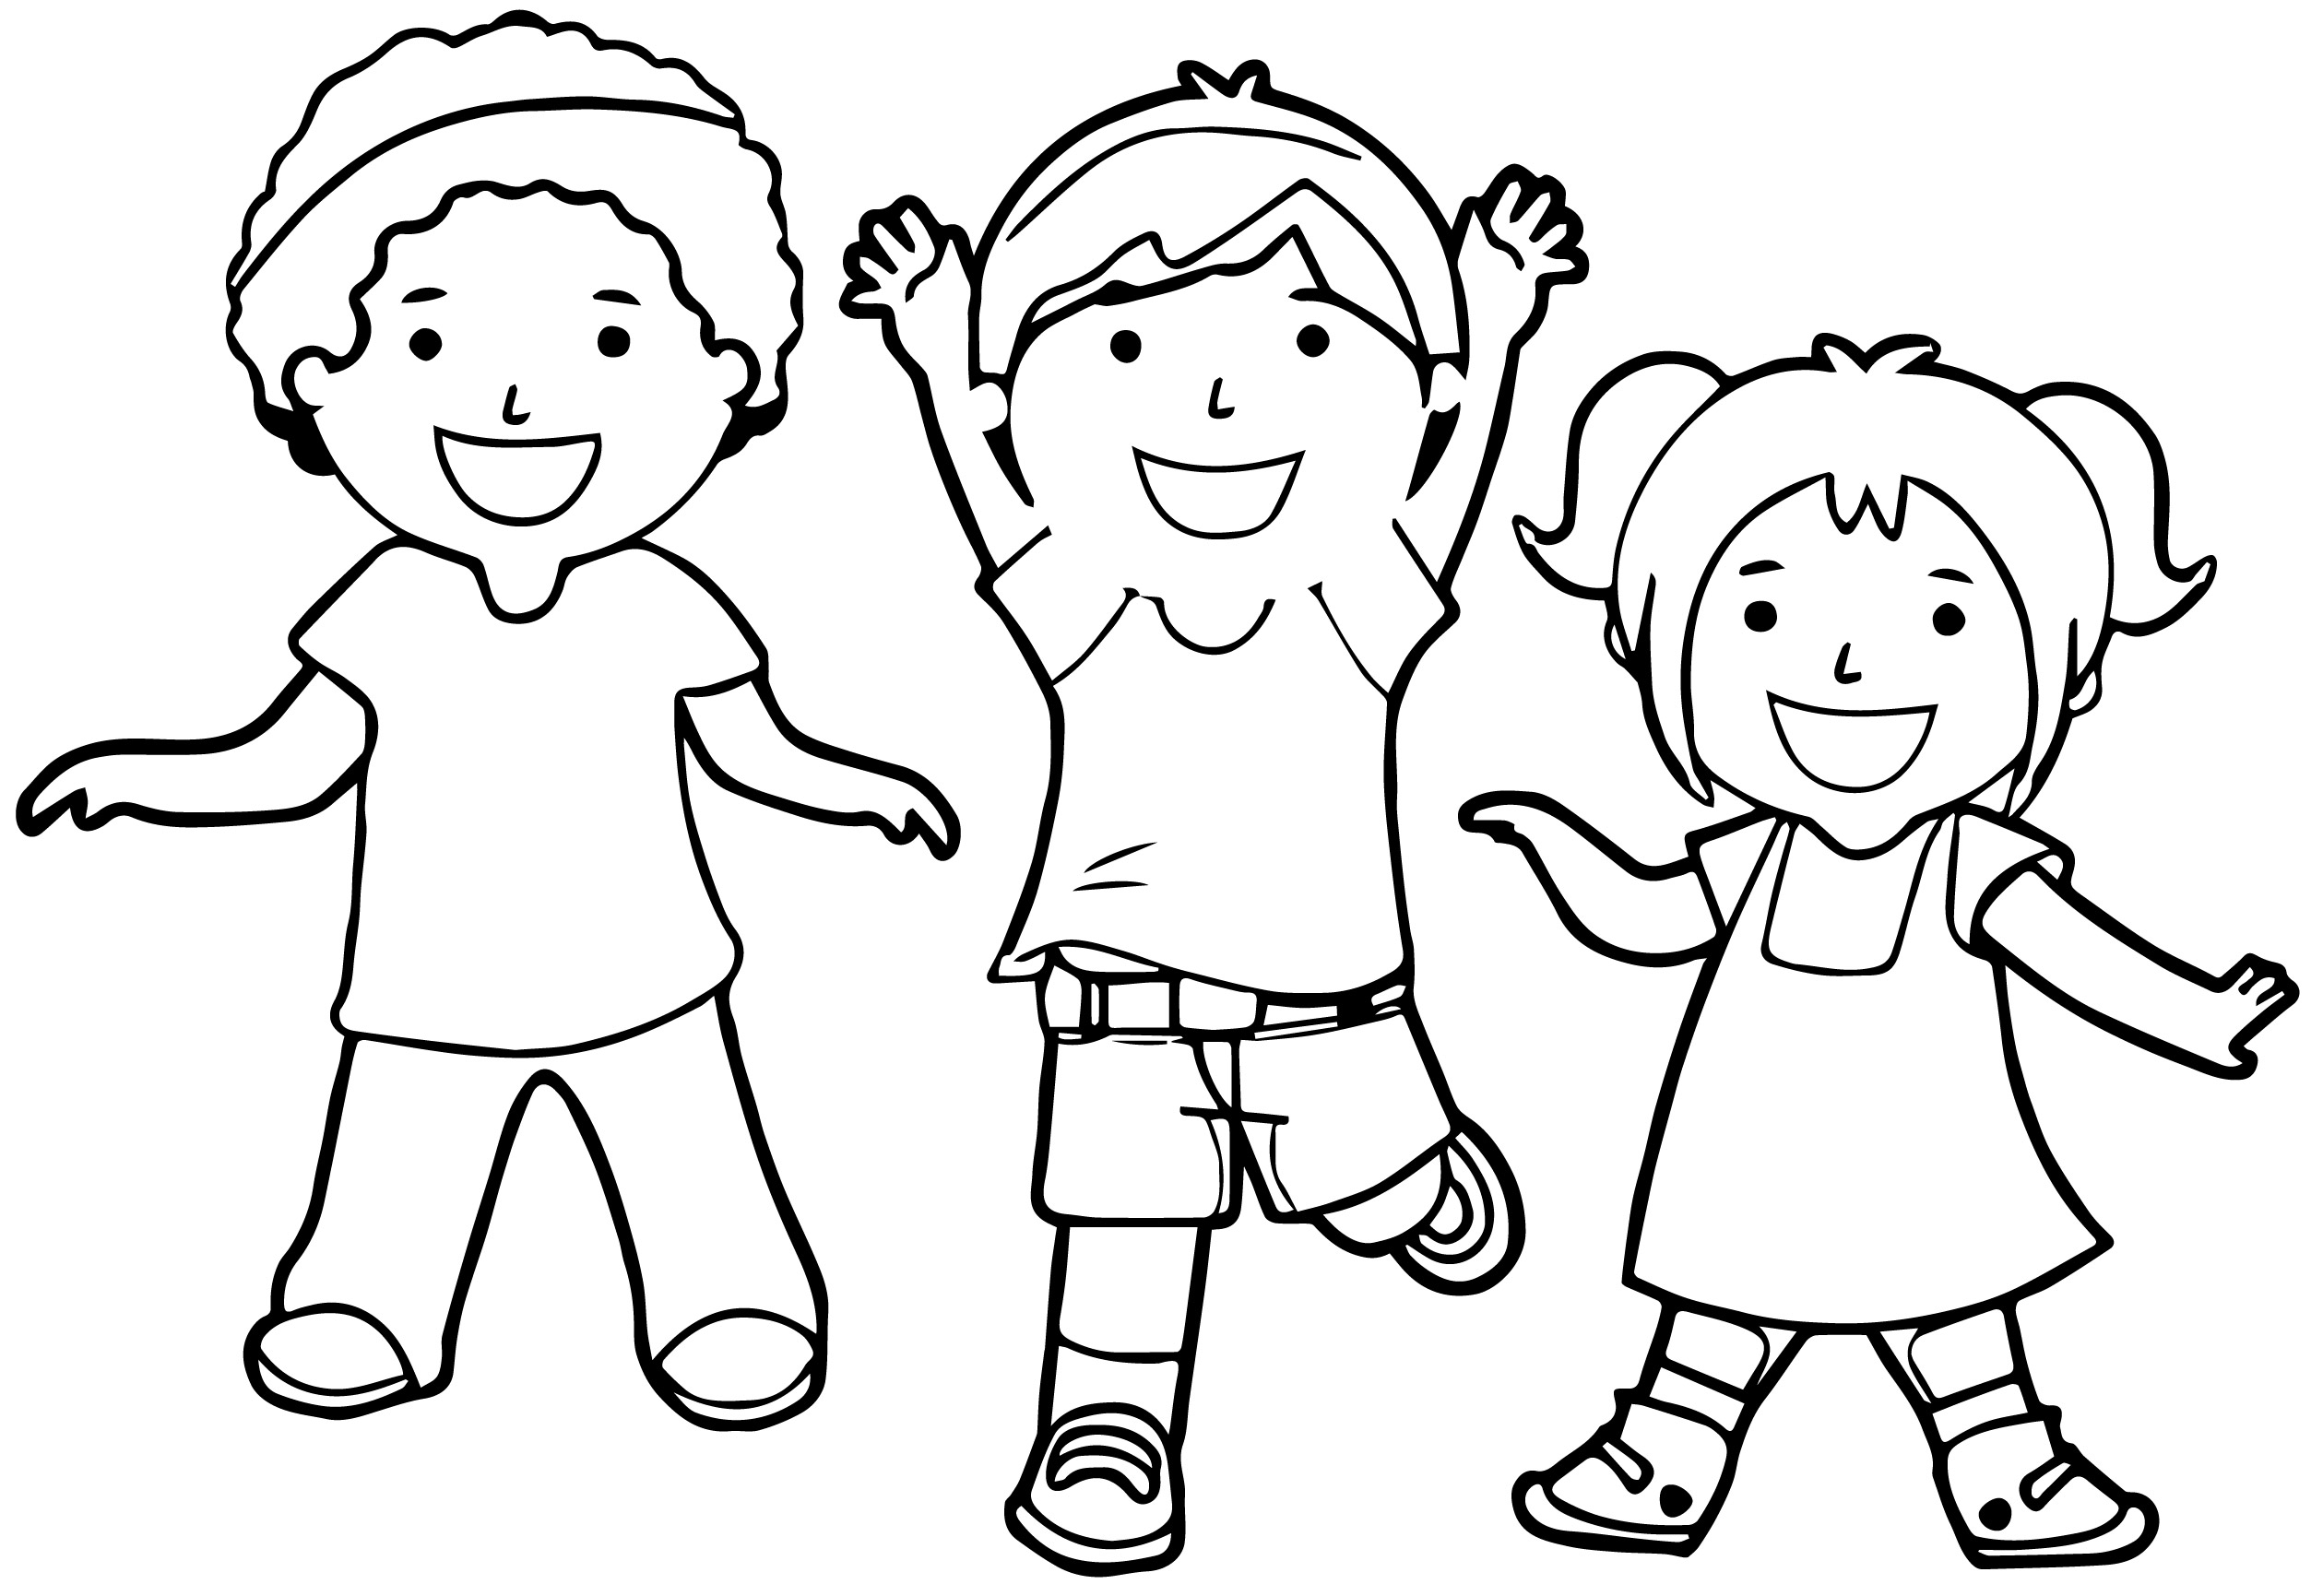 Color clipart child Color Children To With For